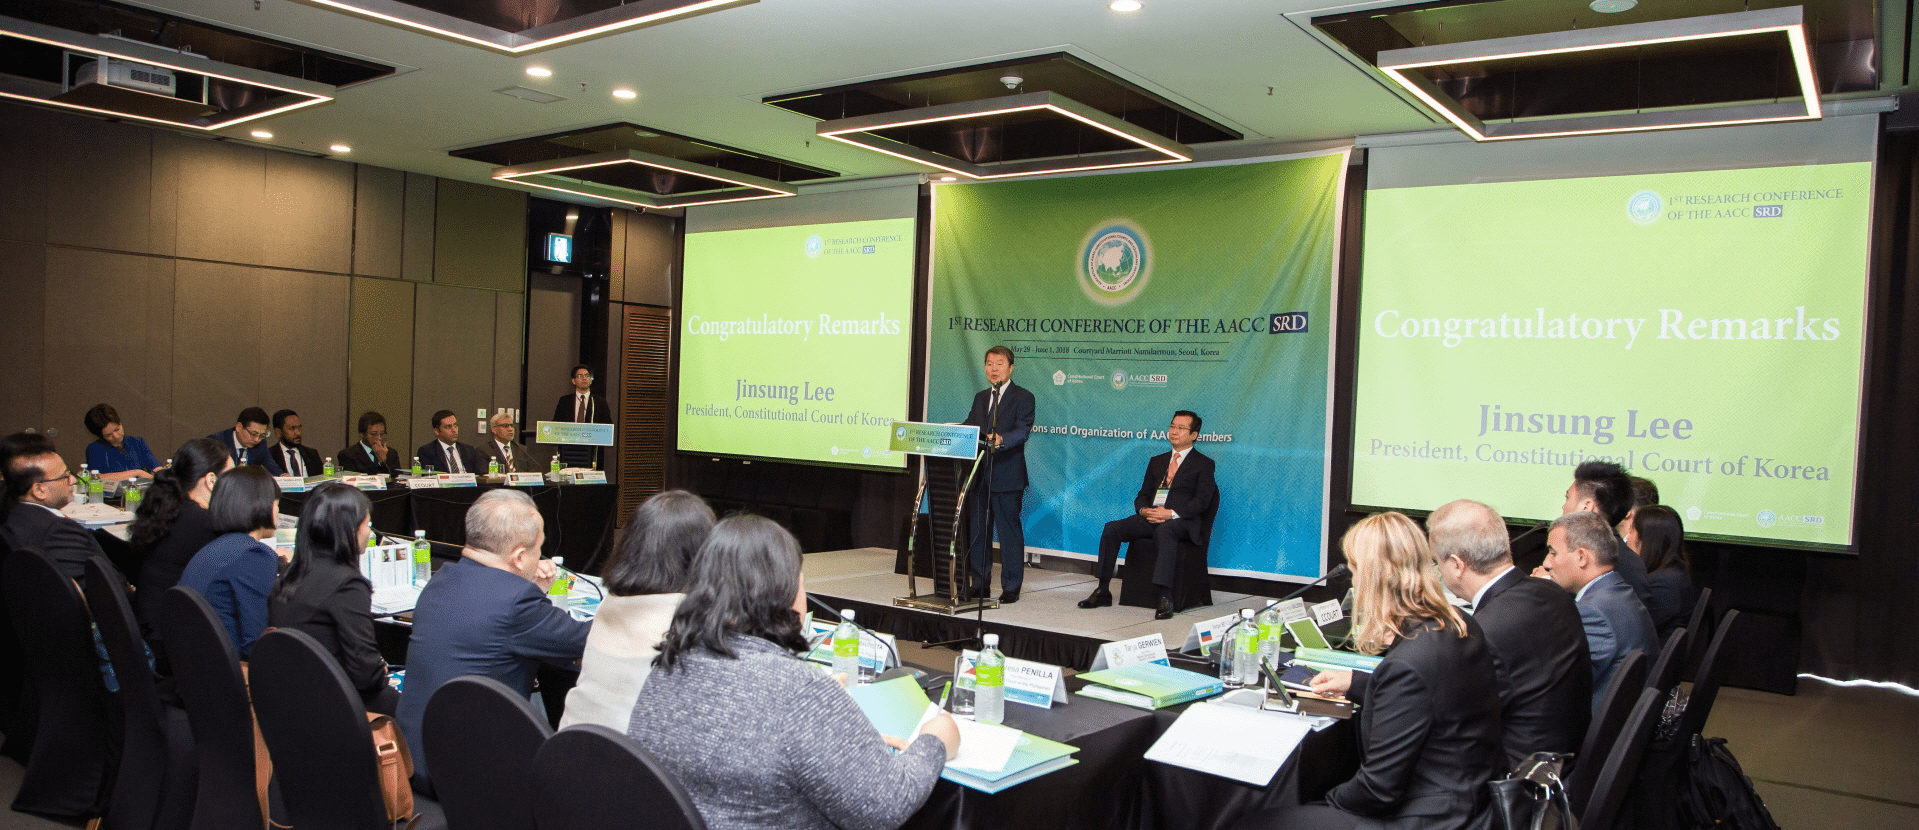 AACC SRD Successfully Concluded its 1<sup>st</sup> Research Conference